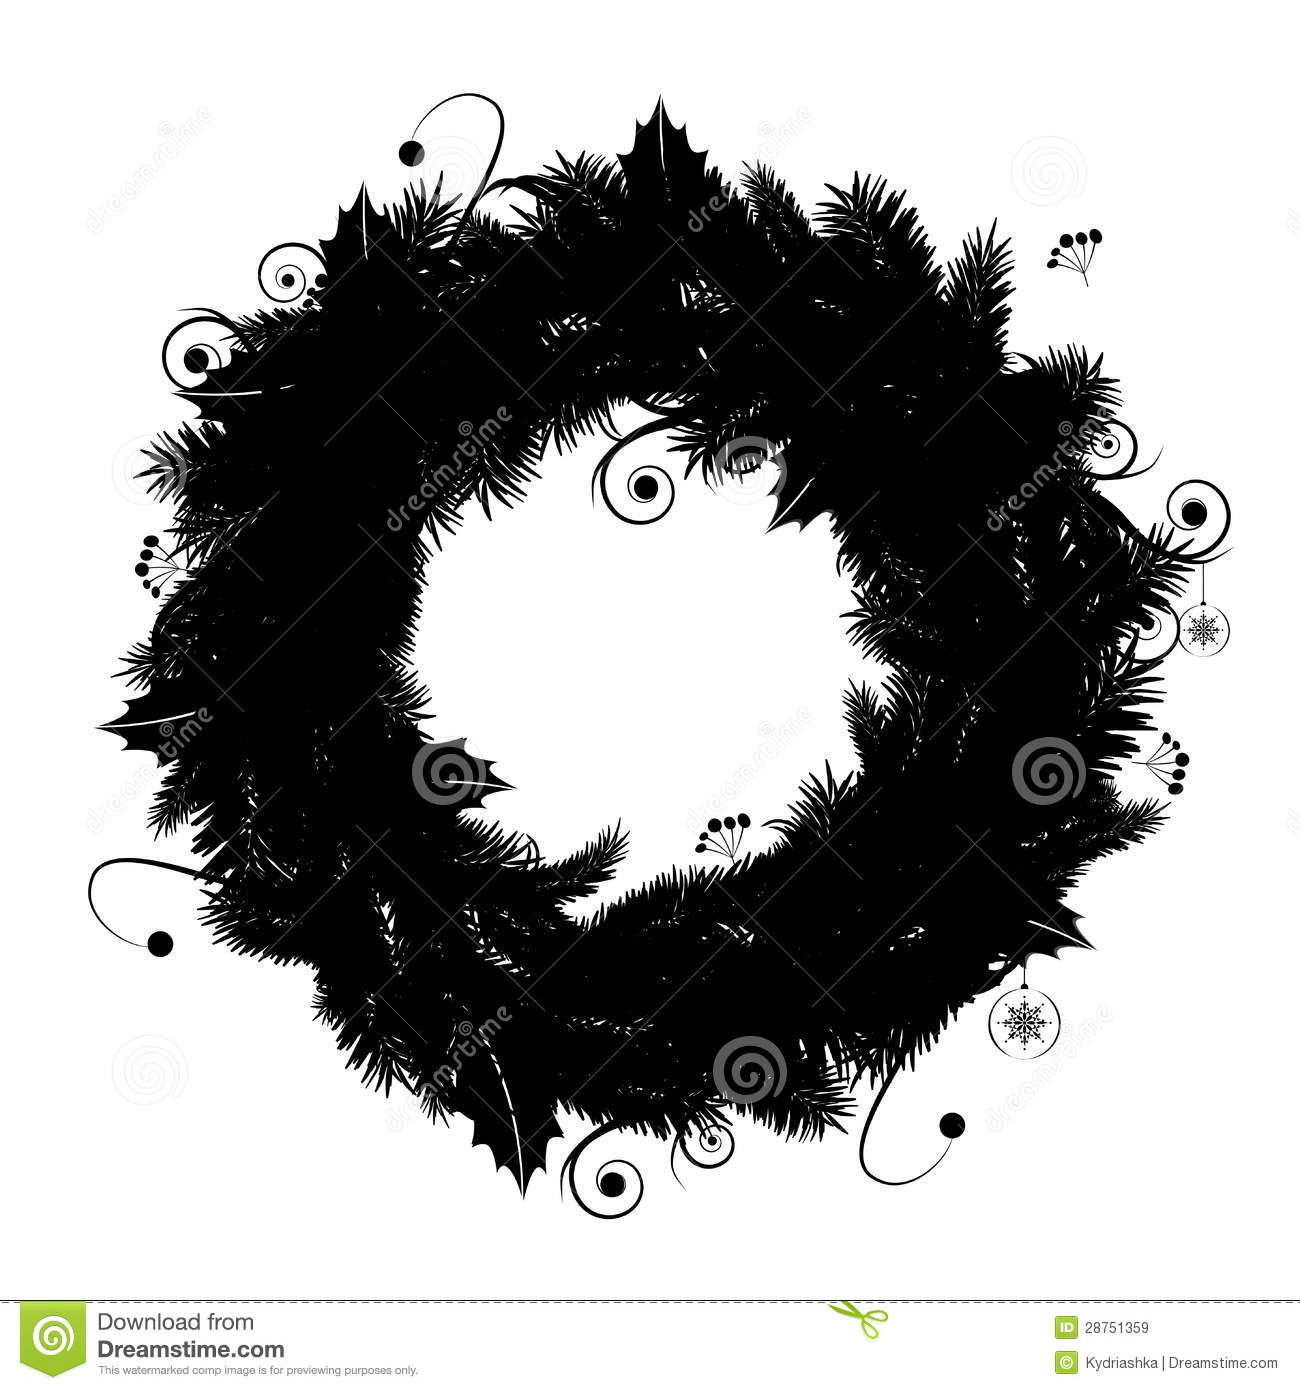 Christmas Wreath Silhouette Free.Christmas Wreath Silhouette For Your Design Stock Vector